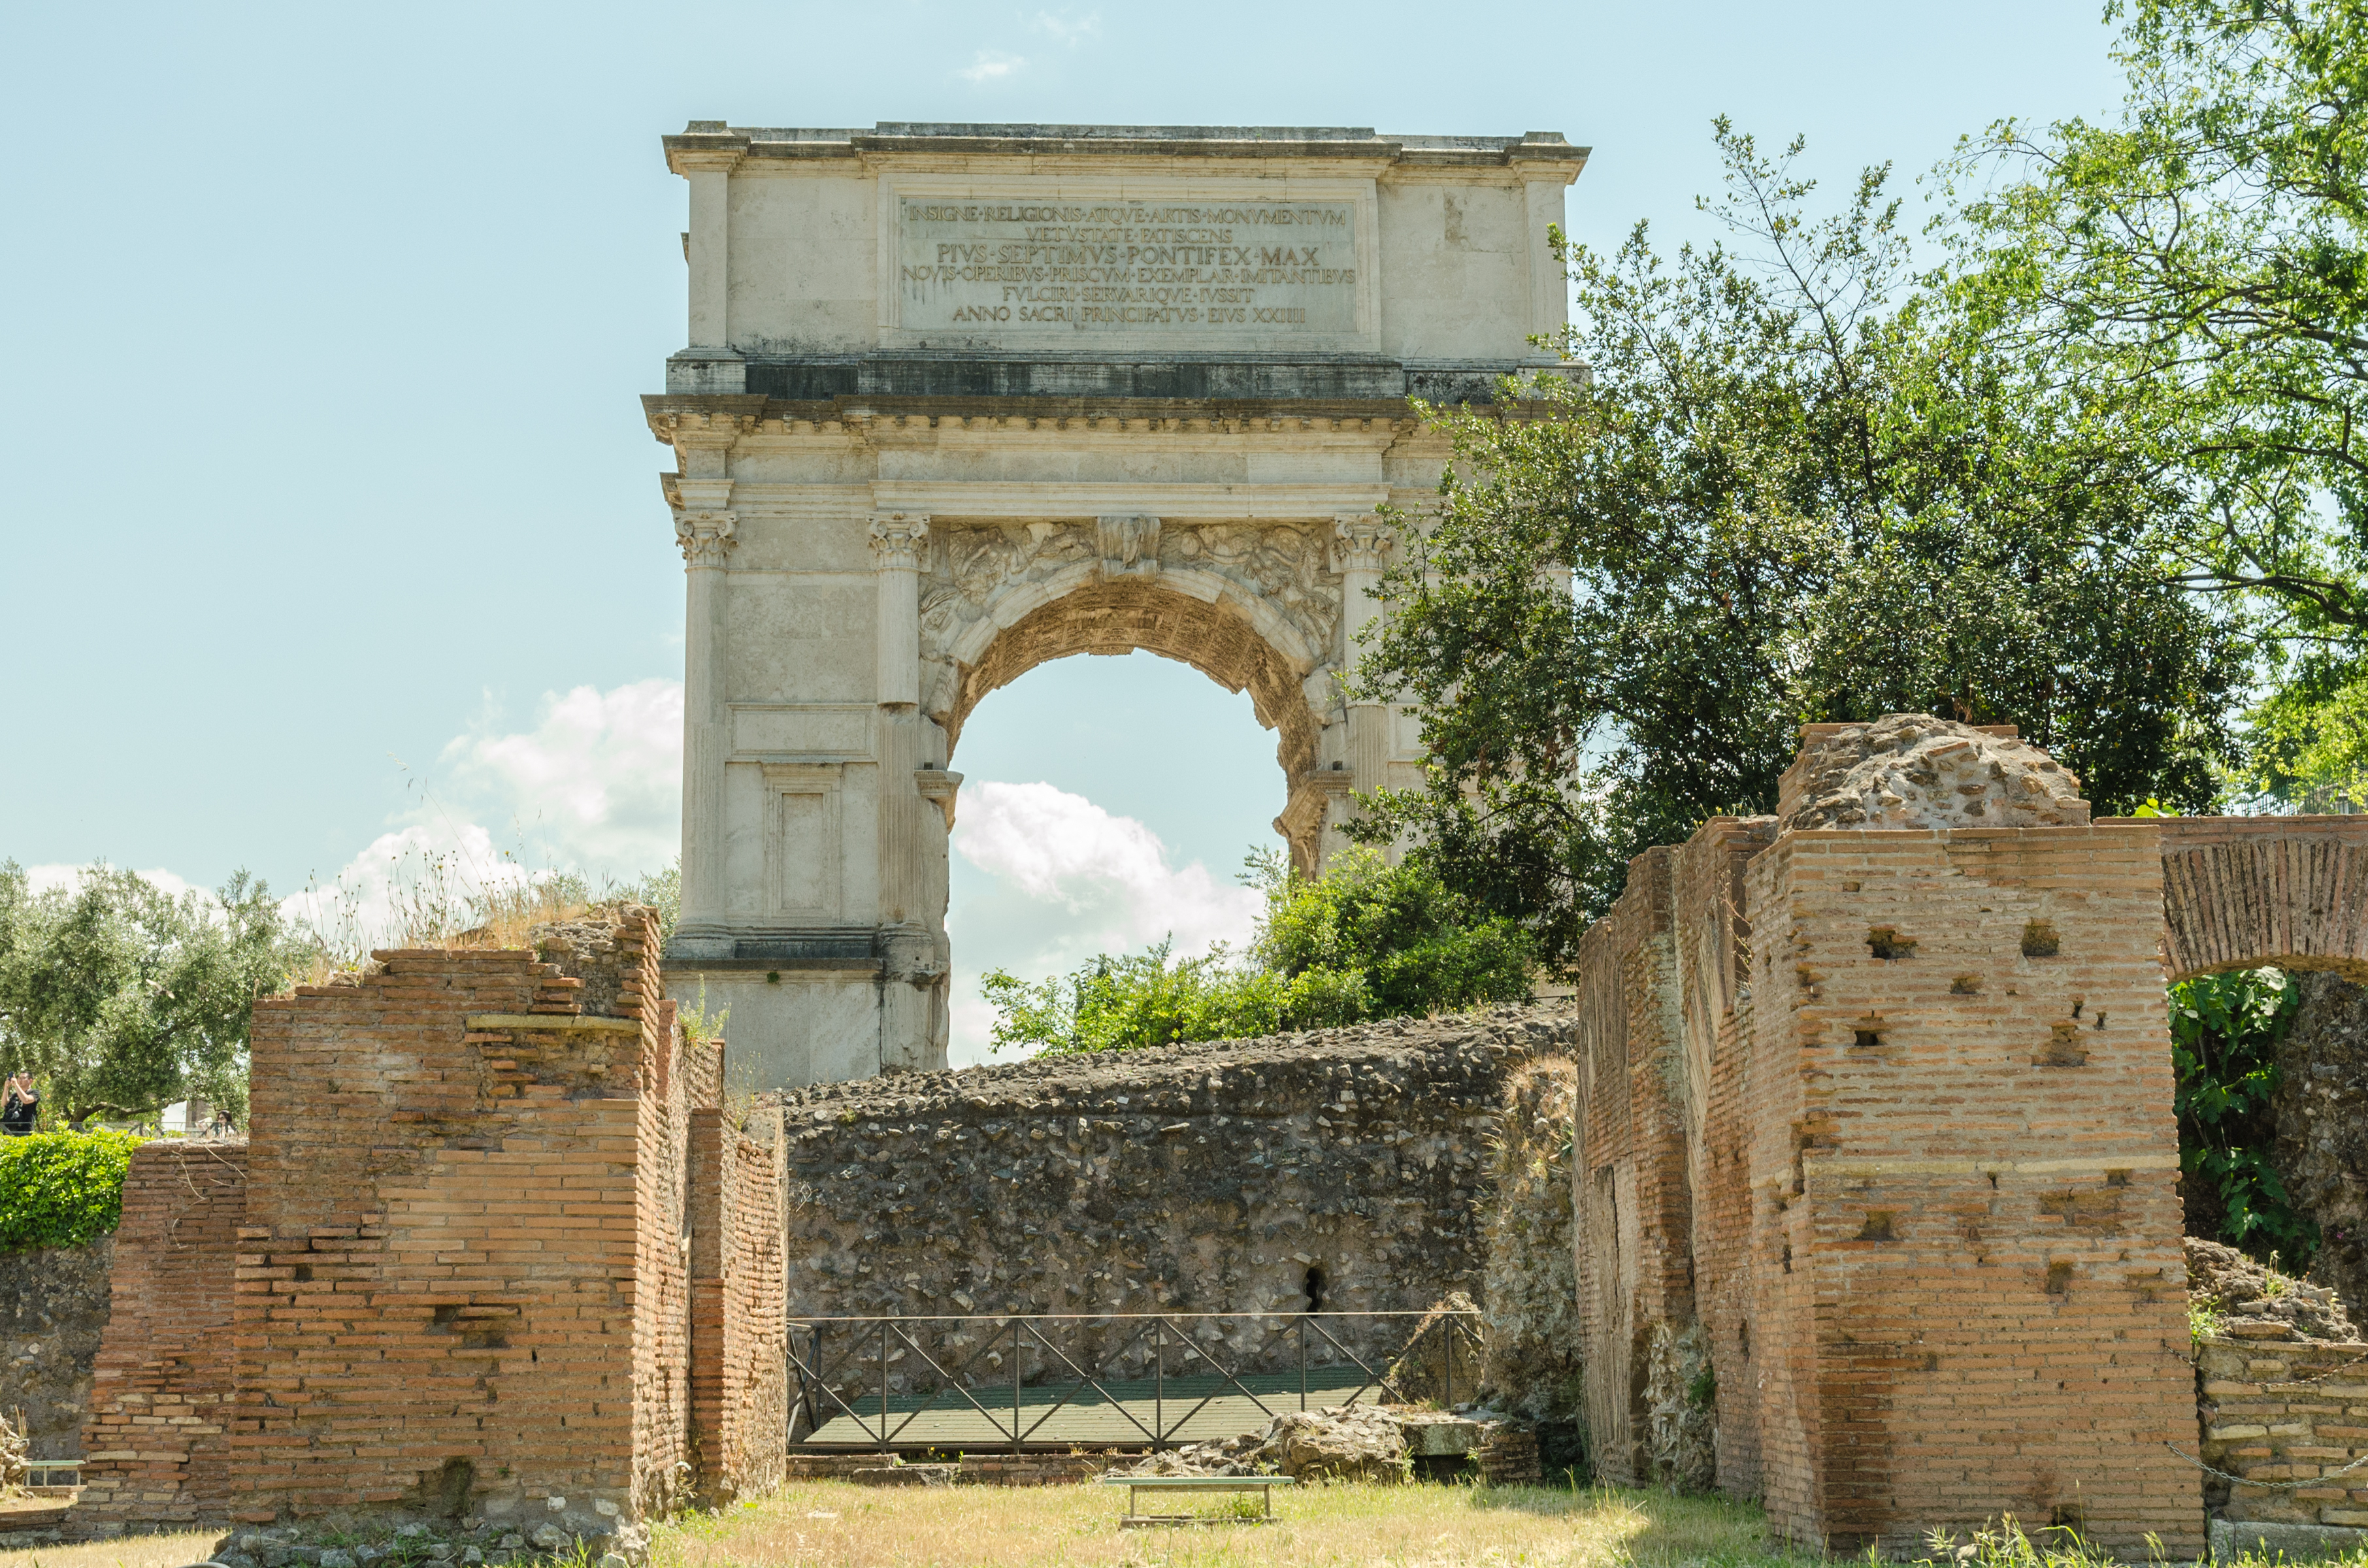 Triumphal arch of Titus in Rome, Italy (vladibuddy/Shutterstock)